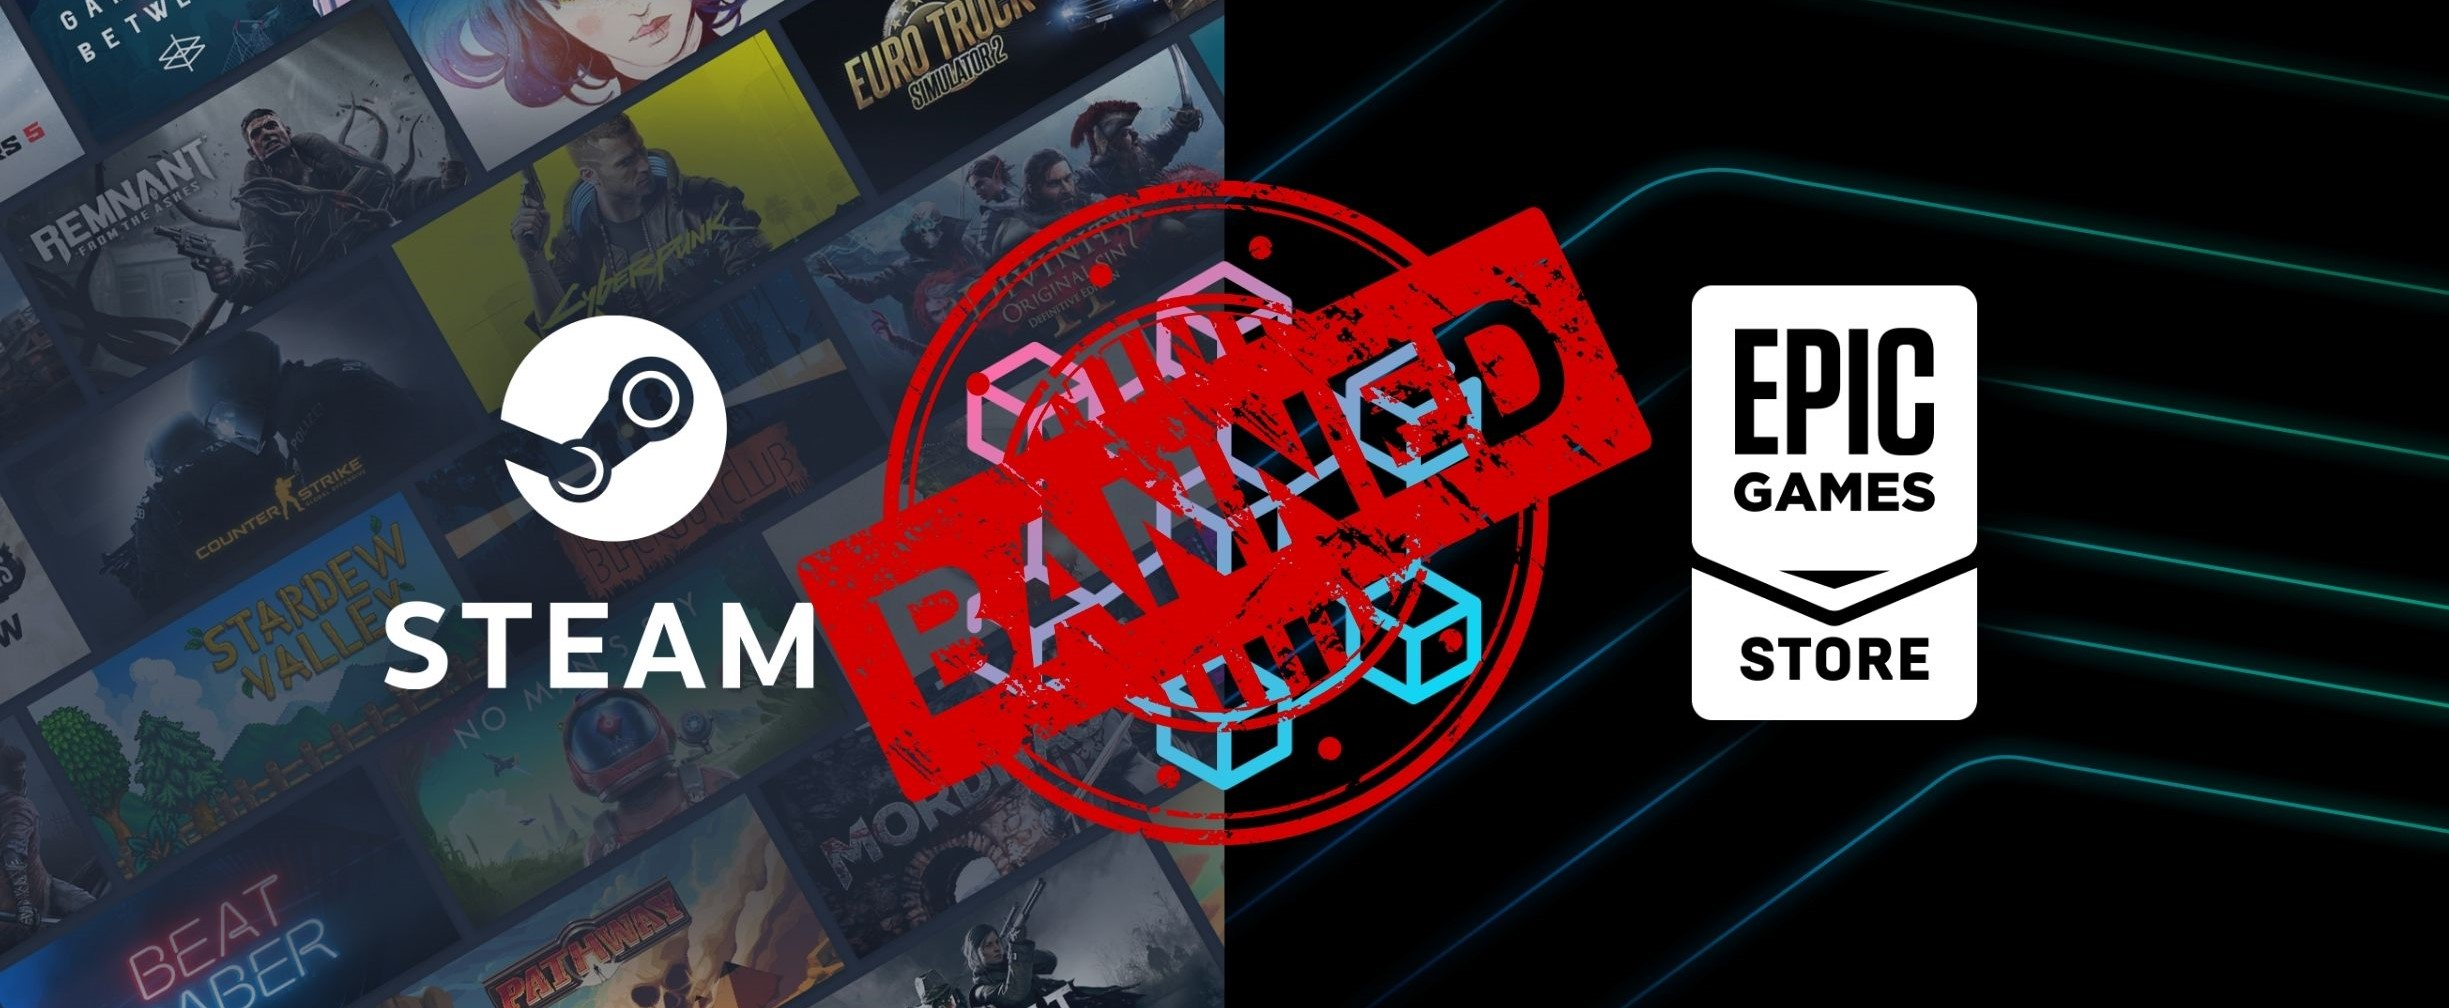 Steam Bans Blockchain Based Games But Epic Games Thinks Otherwise